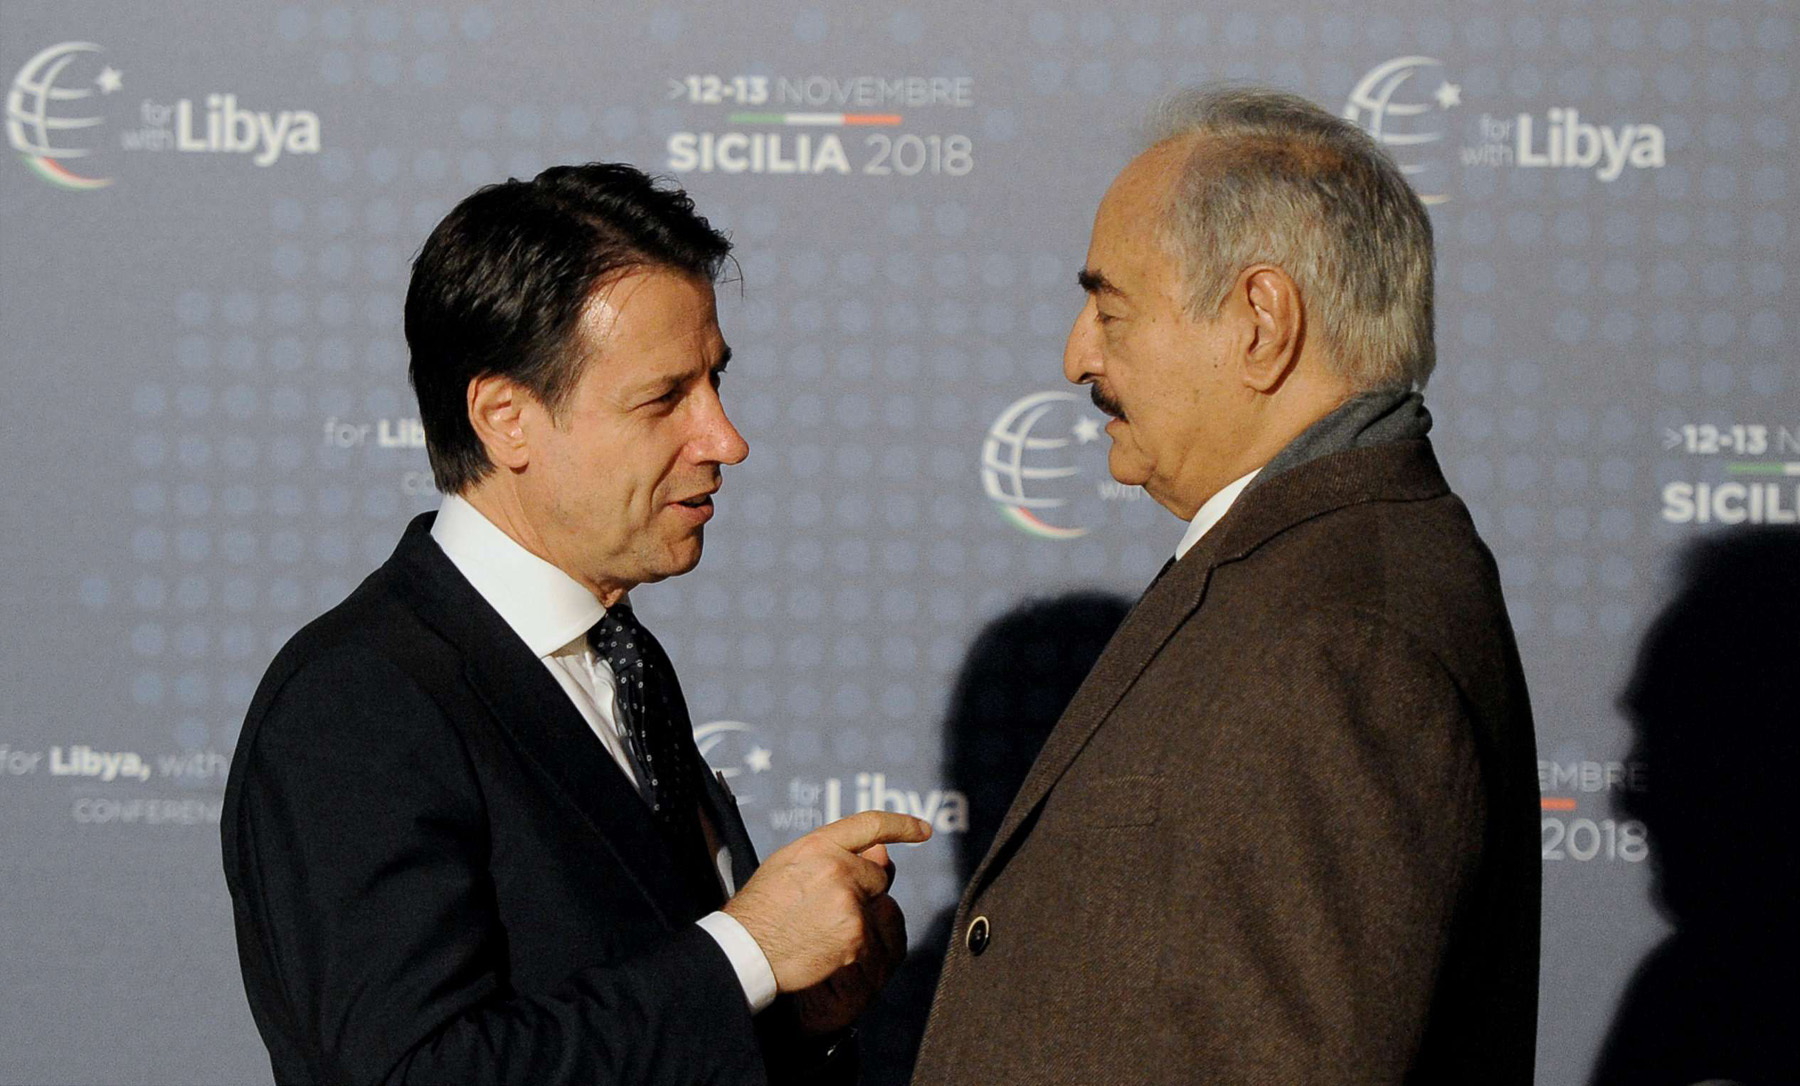 Italian Prime Minister Giuseppe Conte (L) and Libyan Field-Marshal Khalifa Haftar at the venue of the international conference on Libya in Palermo, on November 12. (Reuters)